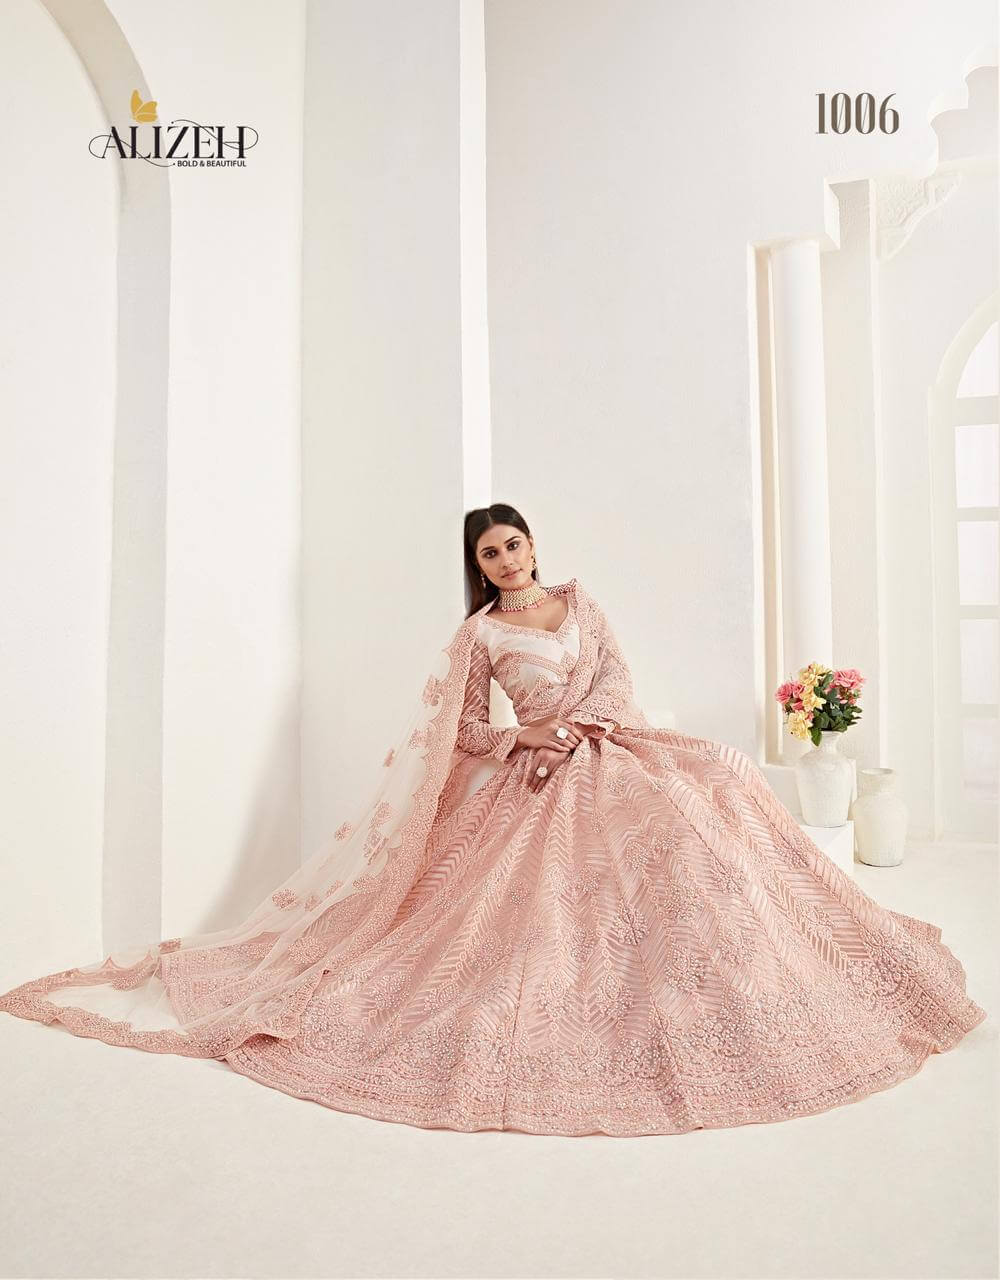 Alizeh Bridal Heritage Vol 2 collection 8